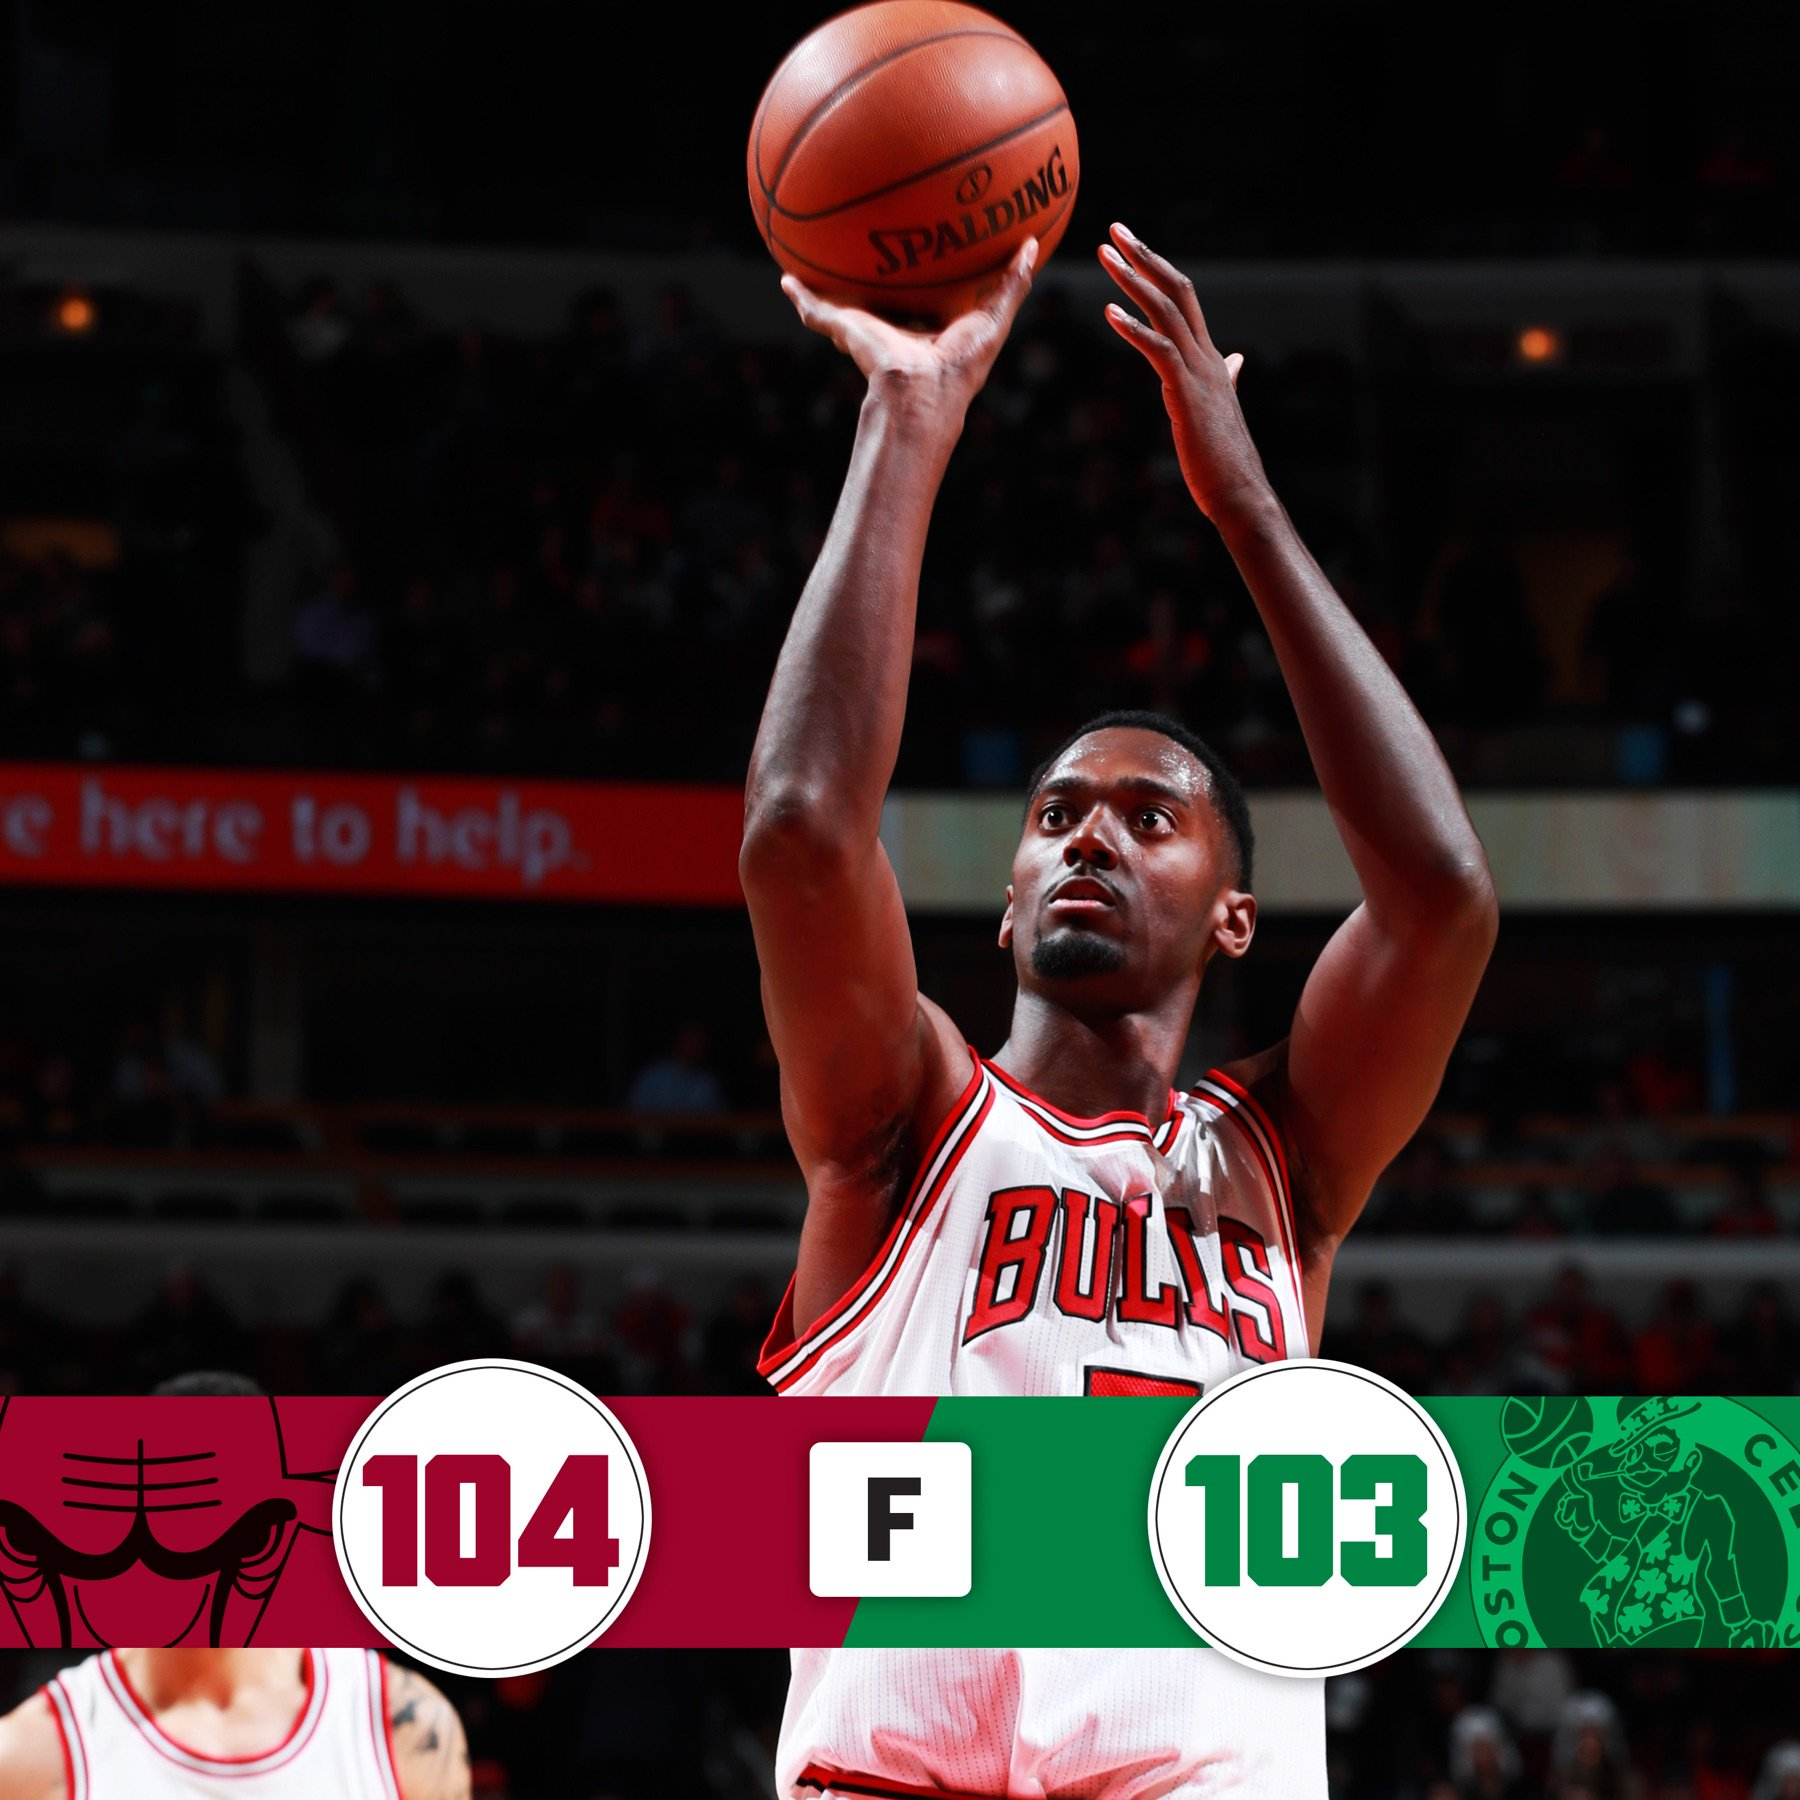 #BullsWin #BullsNation https://t.co/cVOTs3wVIM